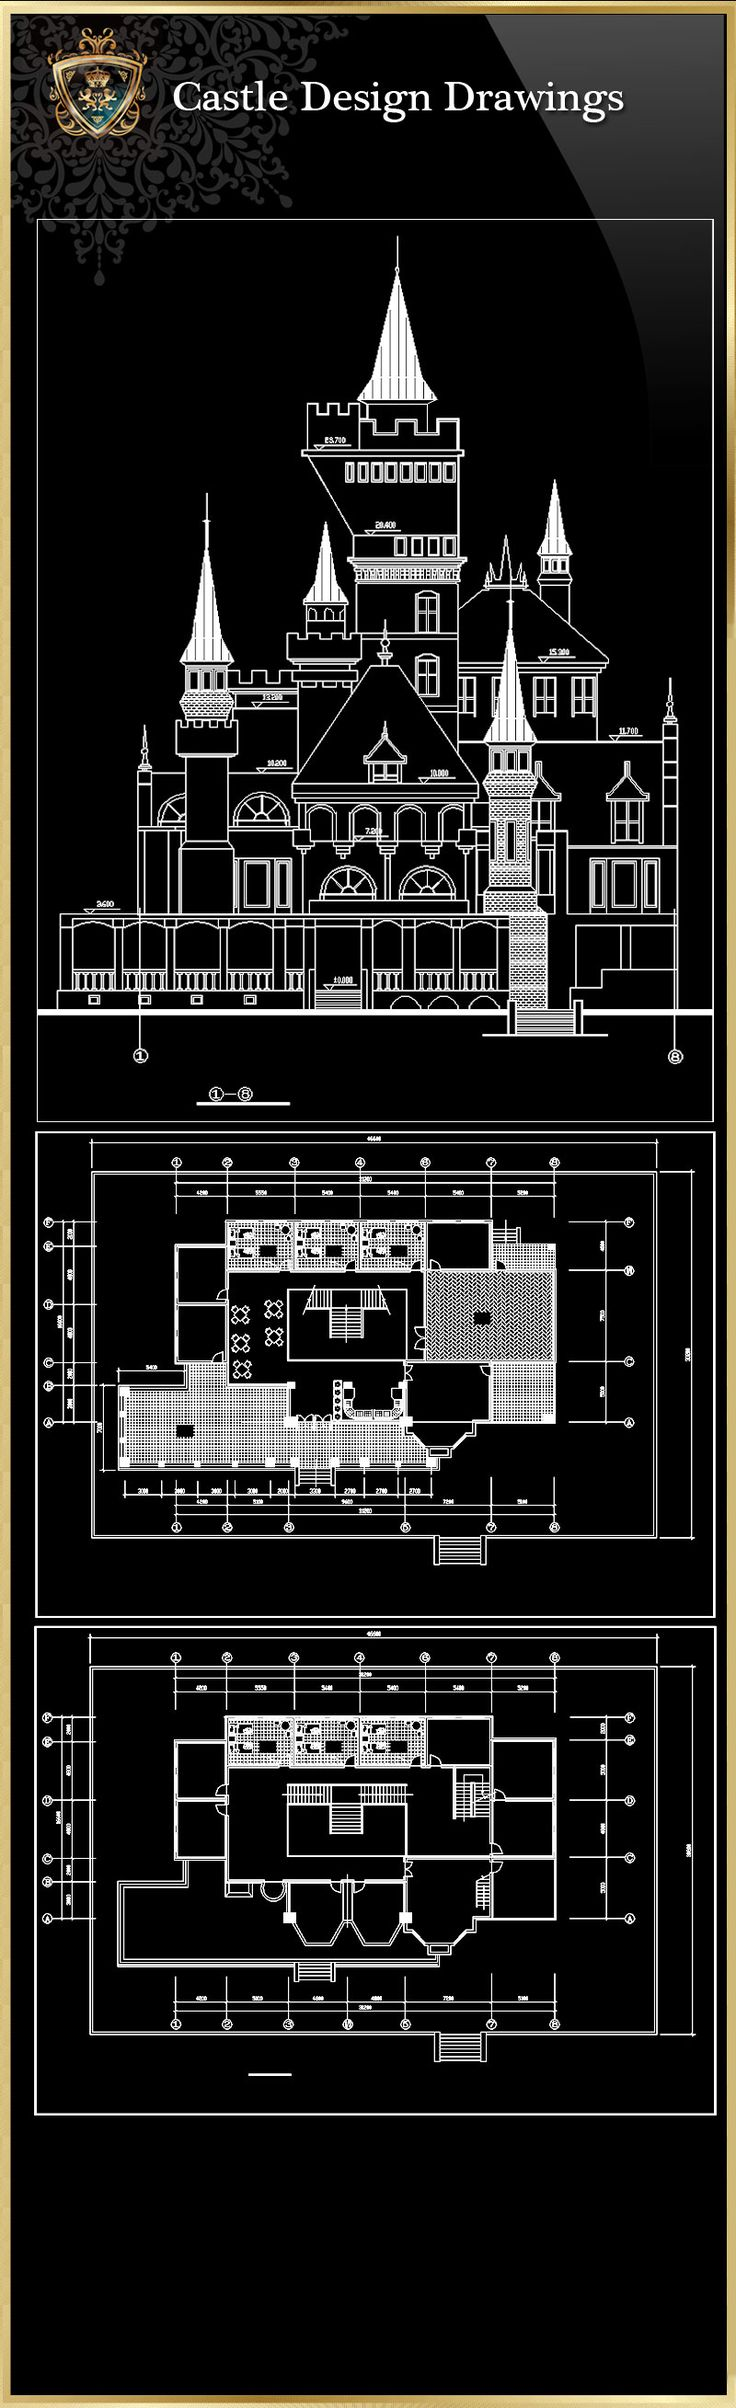 ☆【Castle Design 1】Download Luxury Architectural Design CAD Drawings  Over  20000